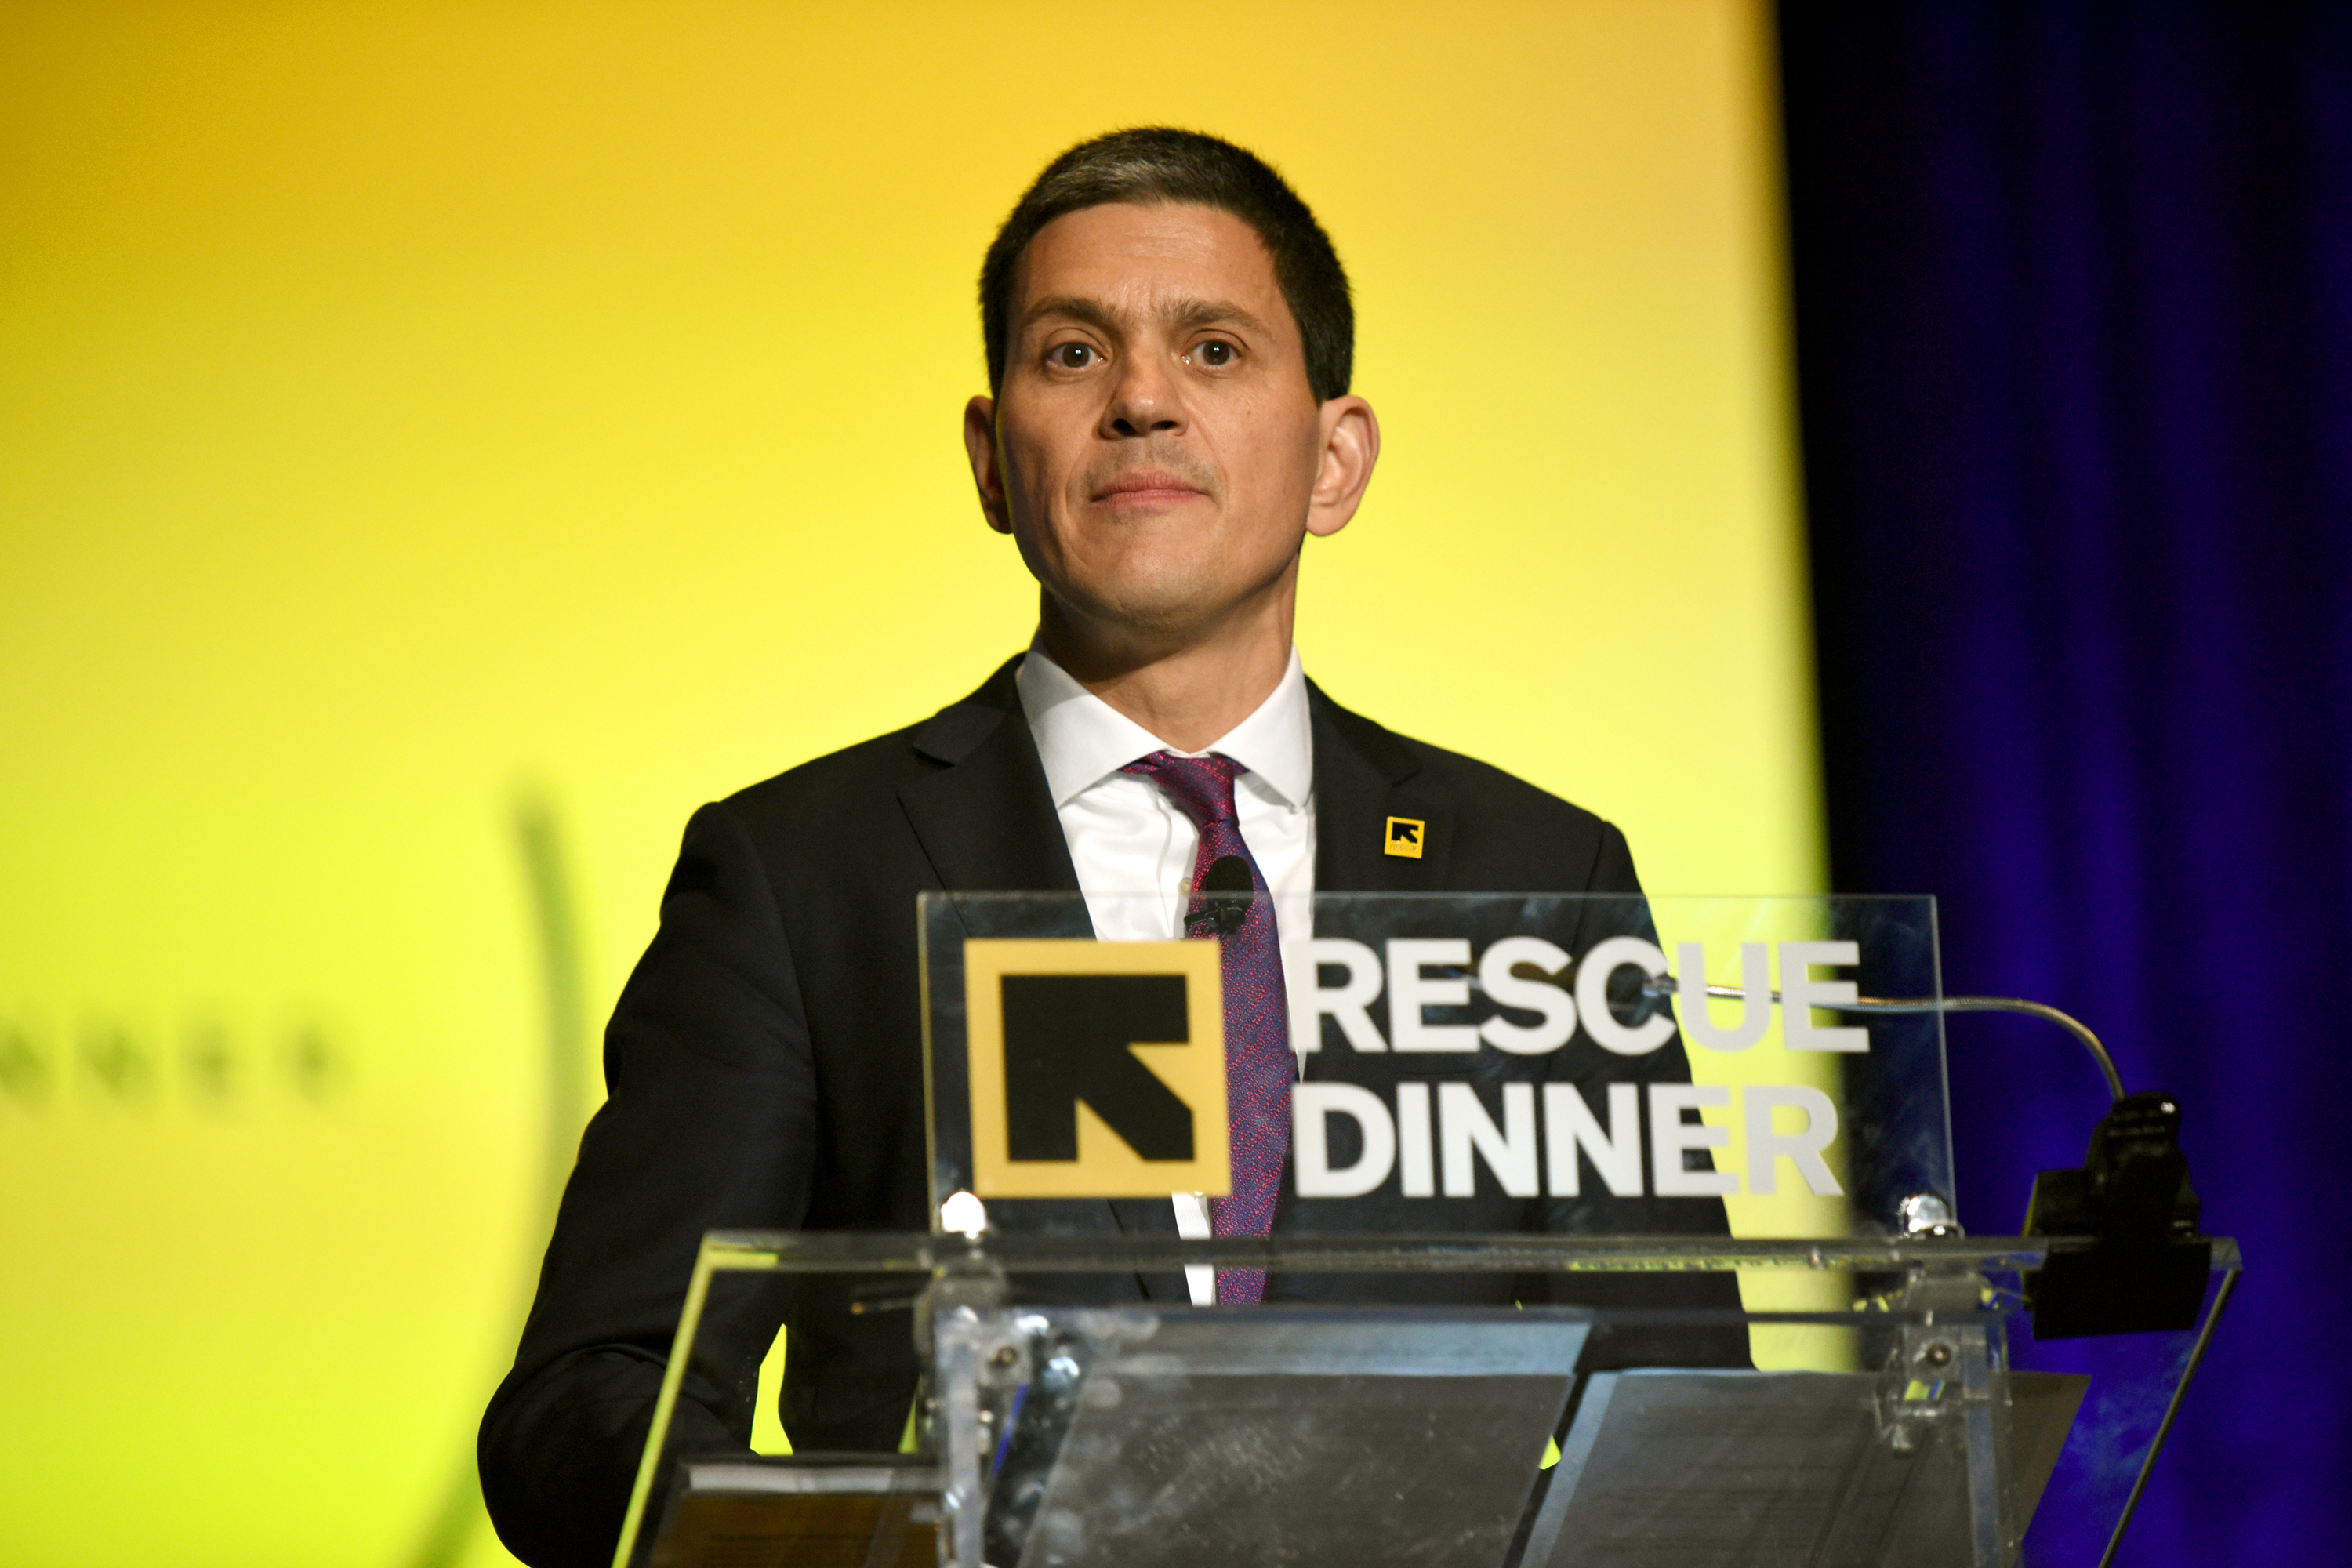 NOV. 02 -  International Rescue Committee (IRC) President & CEO David Miliband speaks onstage at The 2017 IRC Rescue Dinner